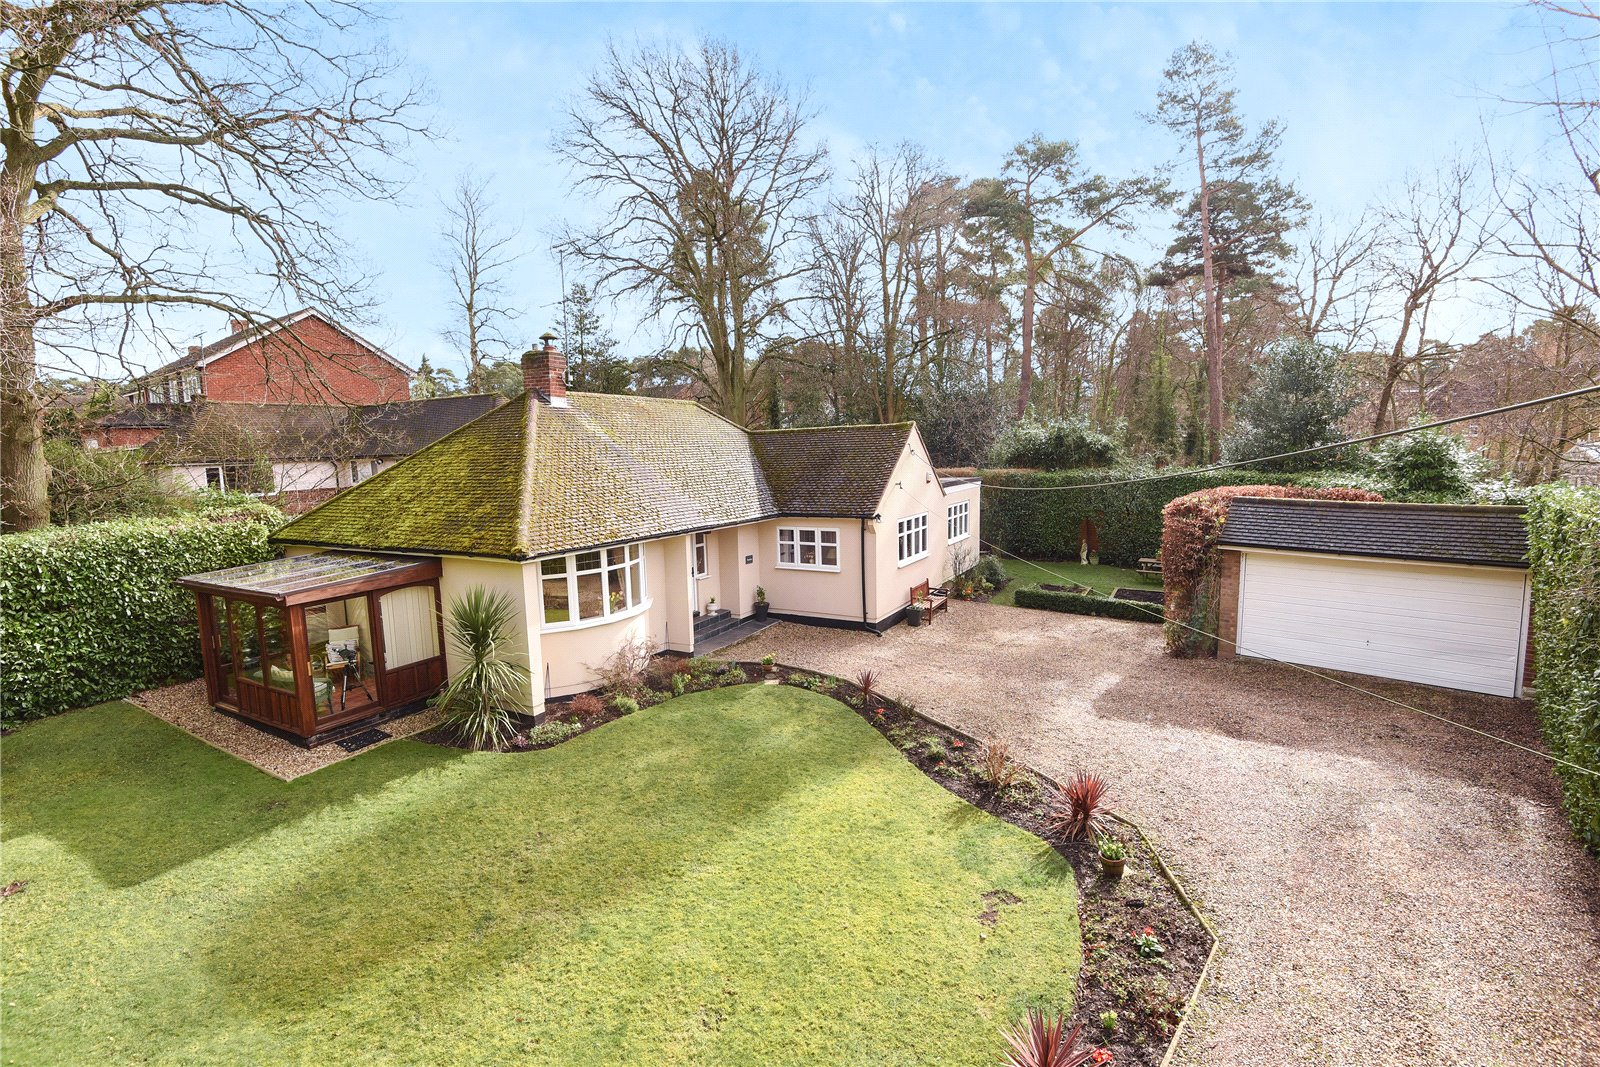 3 Bedrooms Detached Bungalow for sale in Nine Mile Ride, Wokingham, Berkshire, RG40